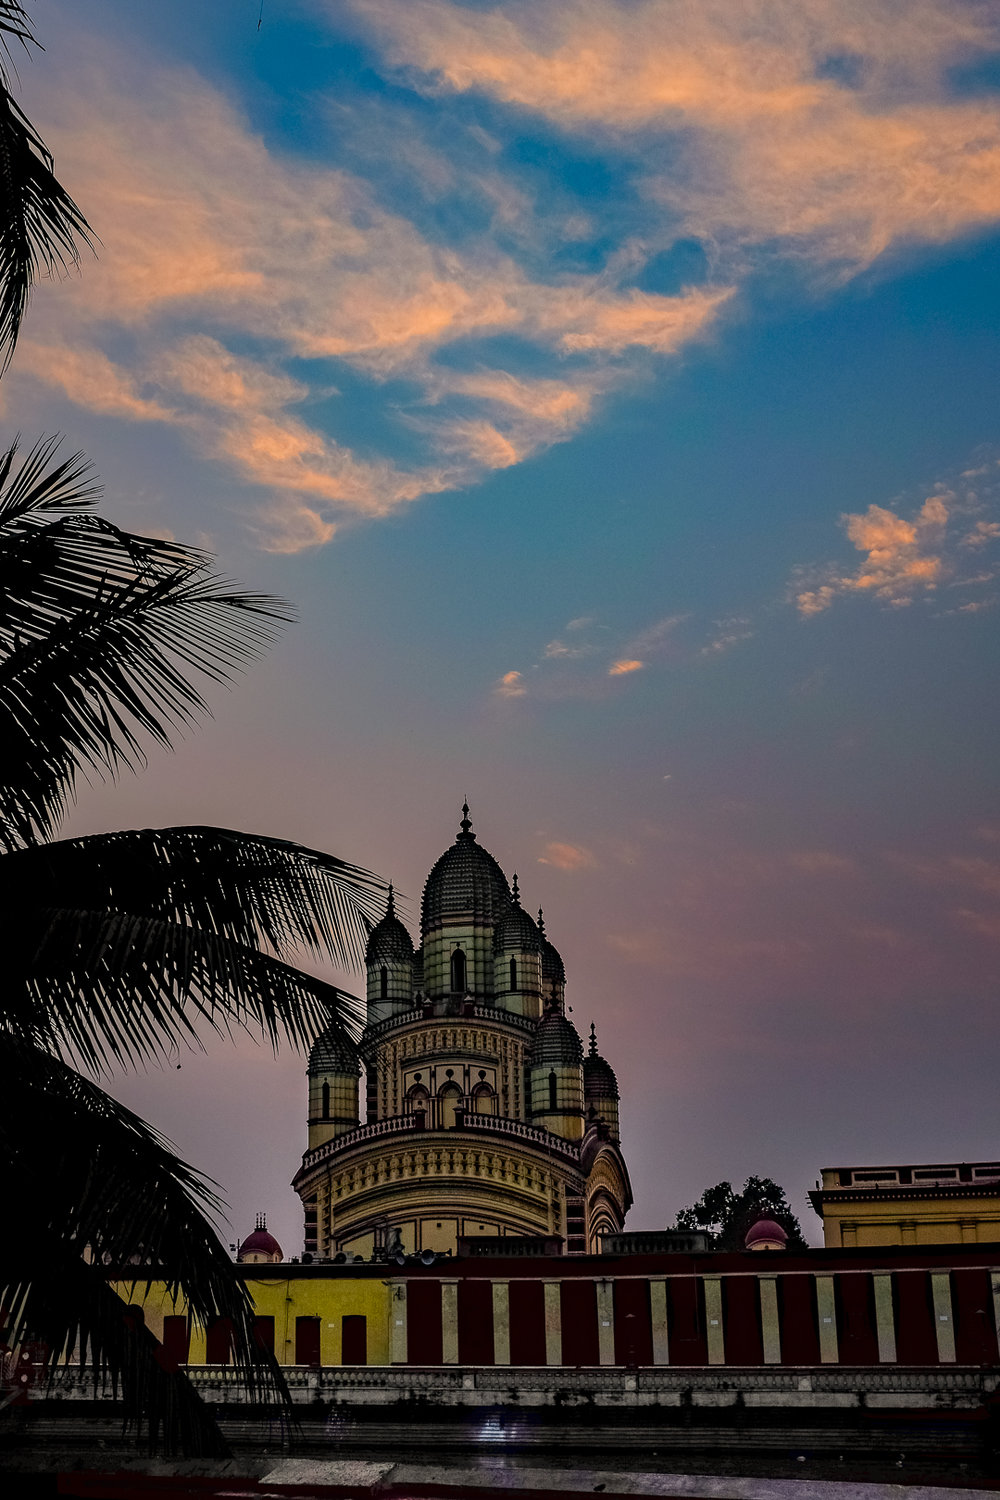 Dakshineshwar, the city most important temple, at sunset.